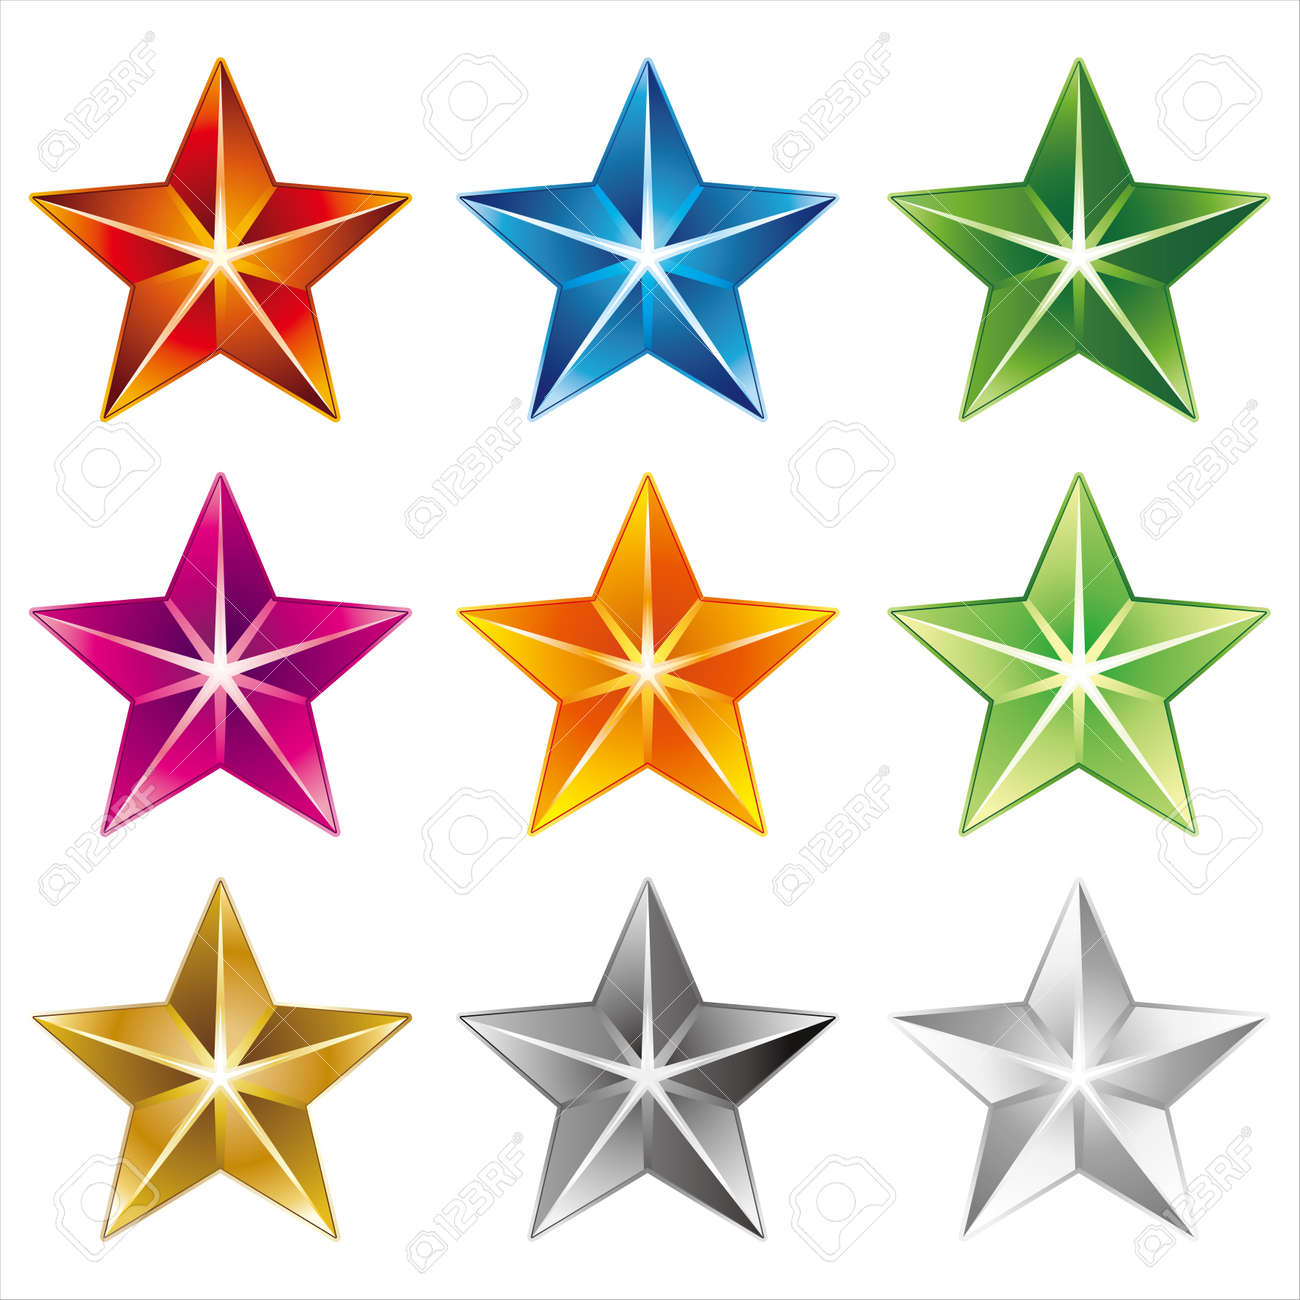 star icon on white background Stock Vector - 8069246